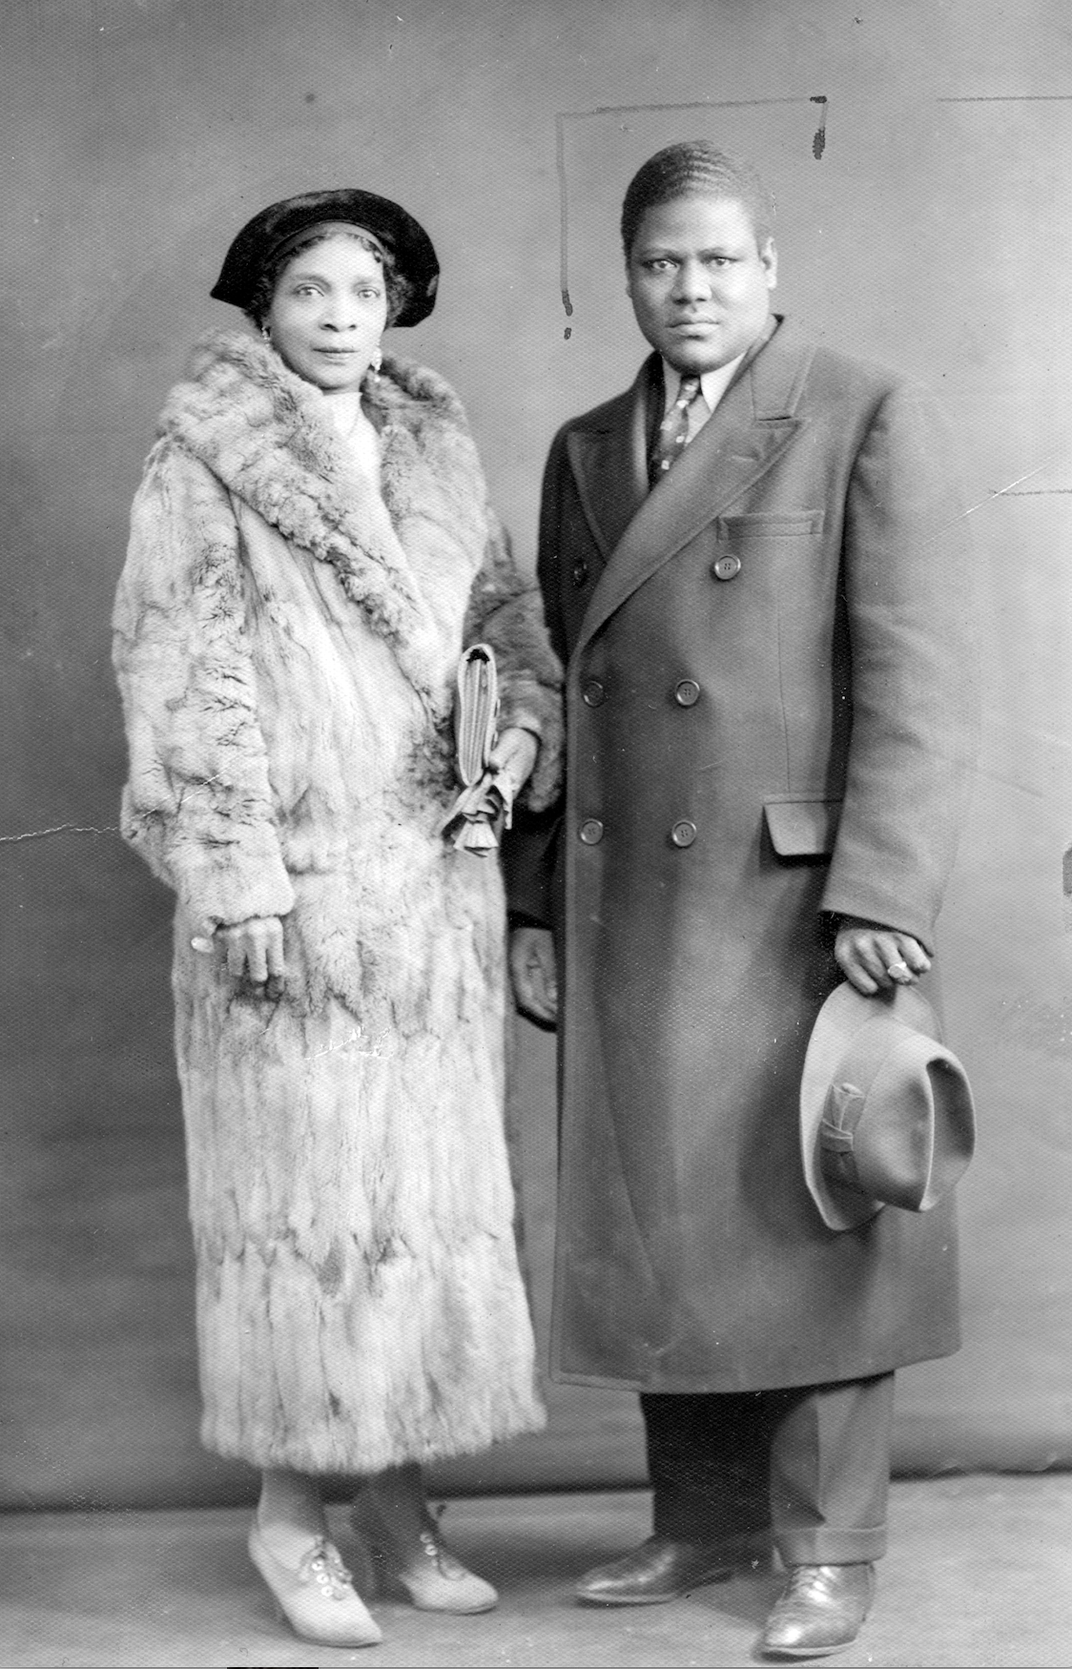 Stephanie St. Clair, Harlem's 'Numbers Queen,' Dominated the Gambling Underground and Made Millions